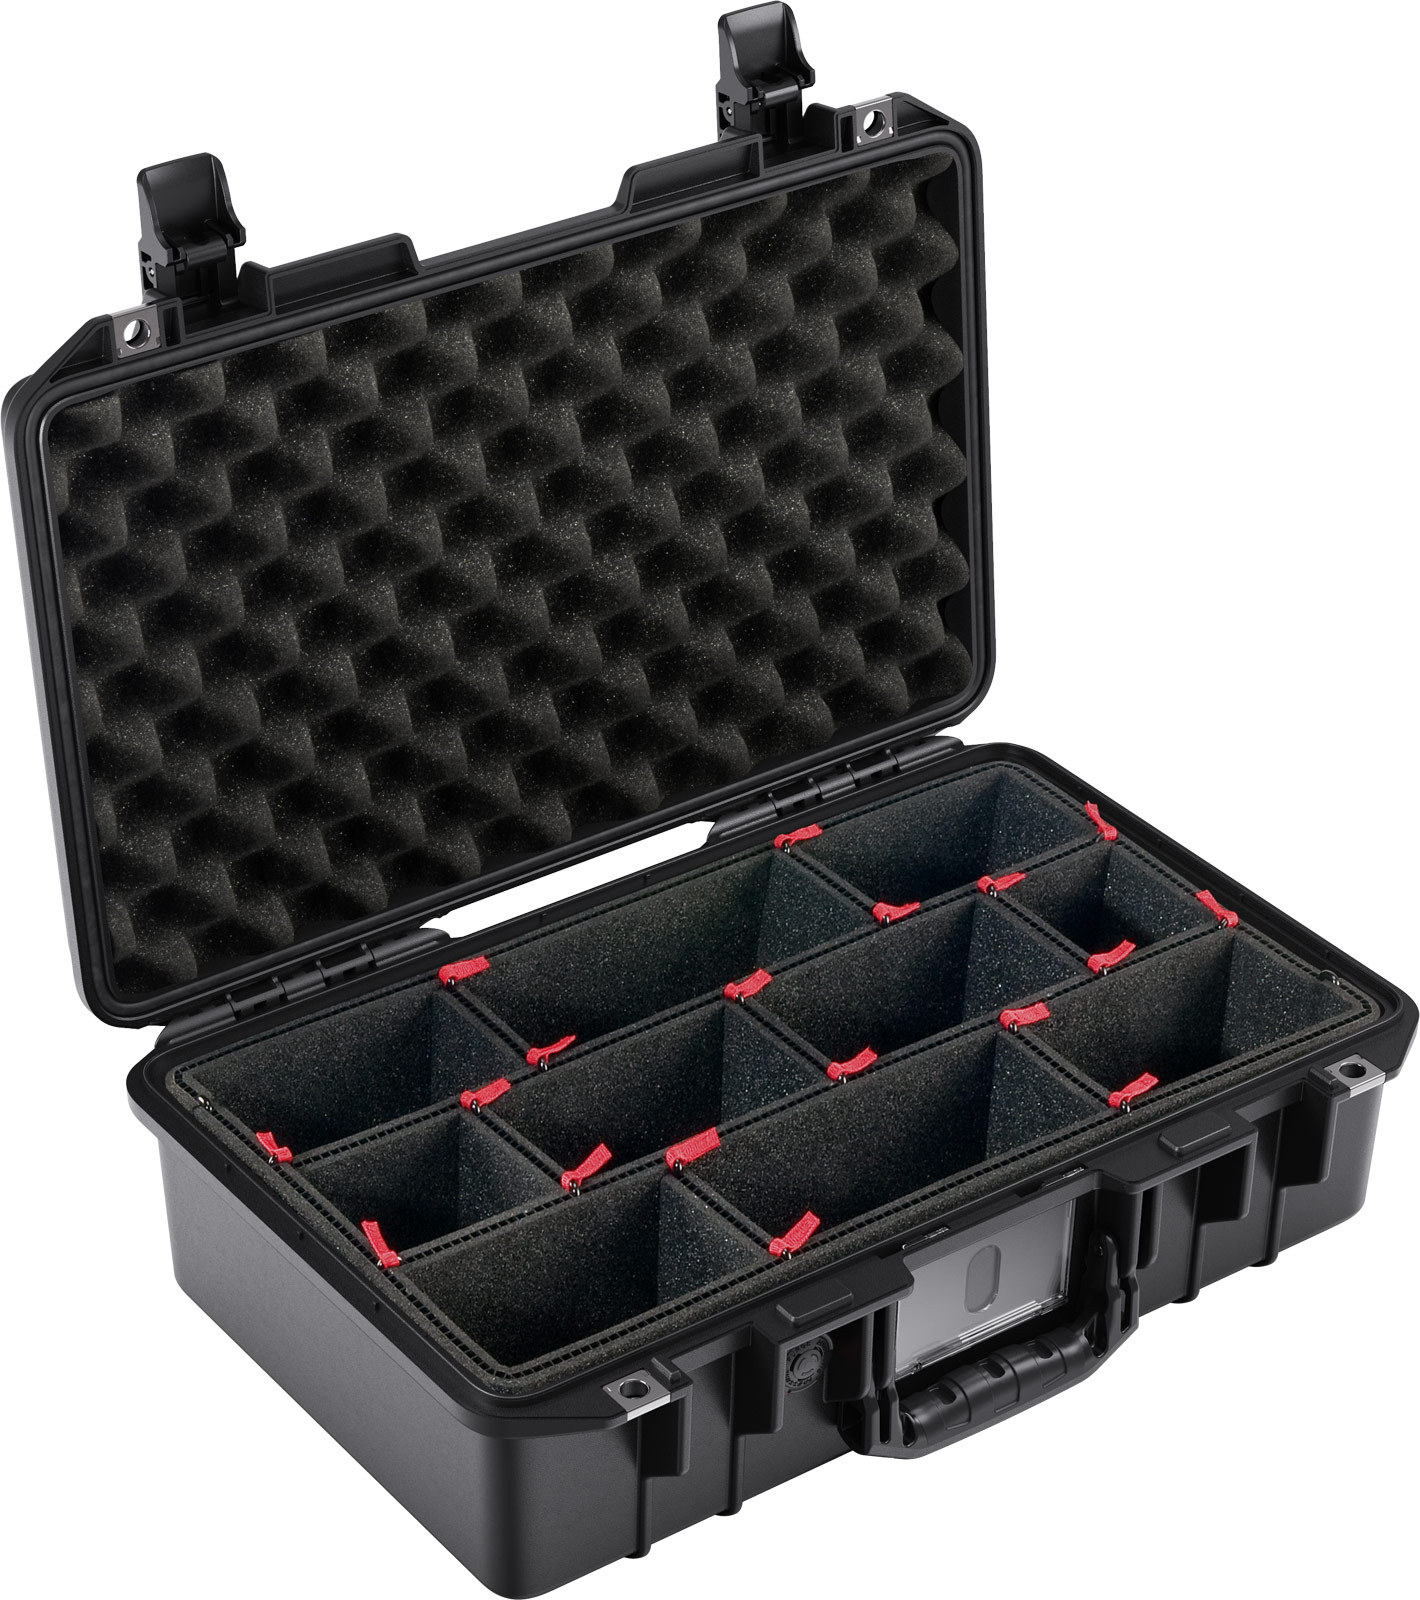 buy pelican air 1485 shop trekpak air hard camera cases